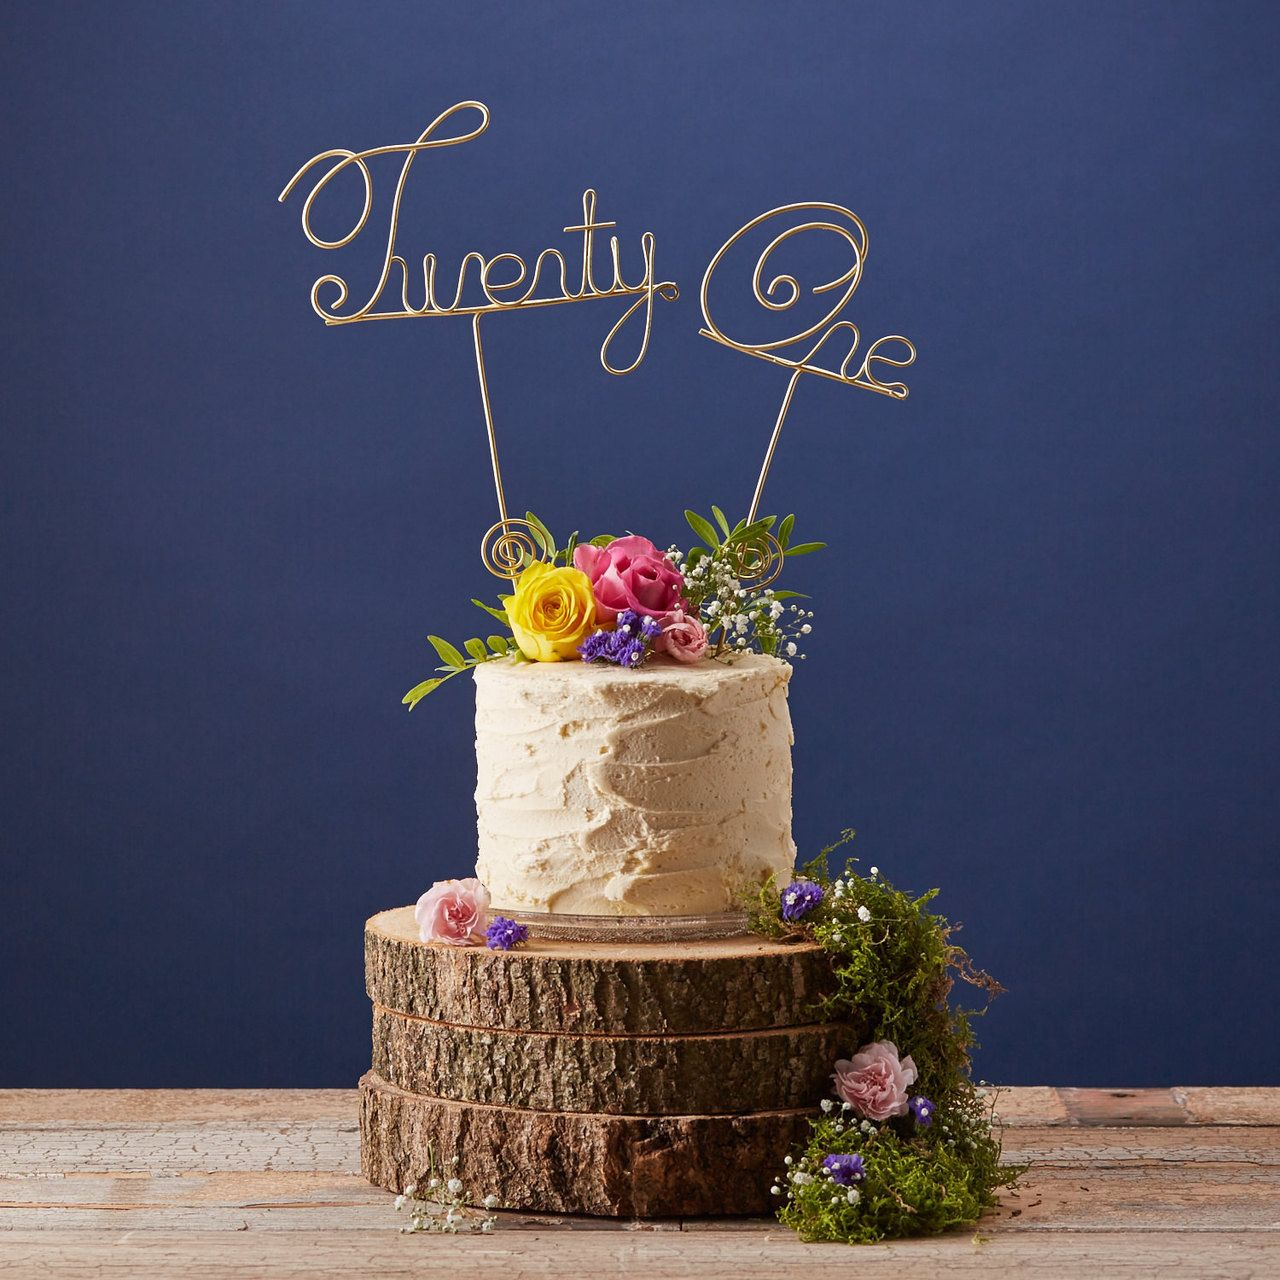 Hooray cake topper from the letter loft cake toppers